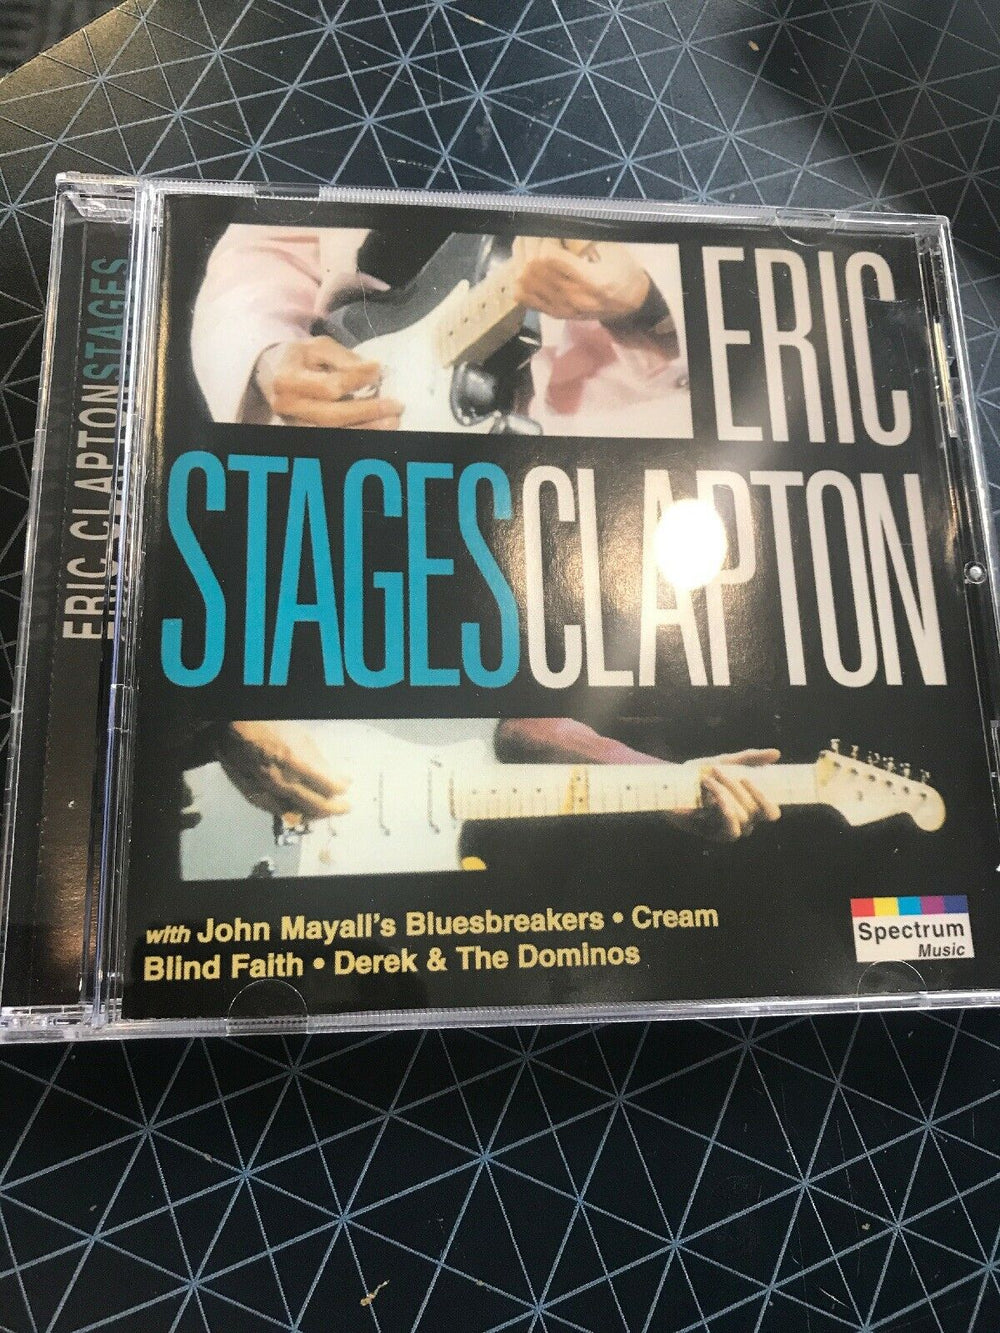 Eric Clapton - Stages - Used CD